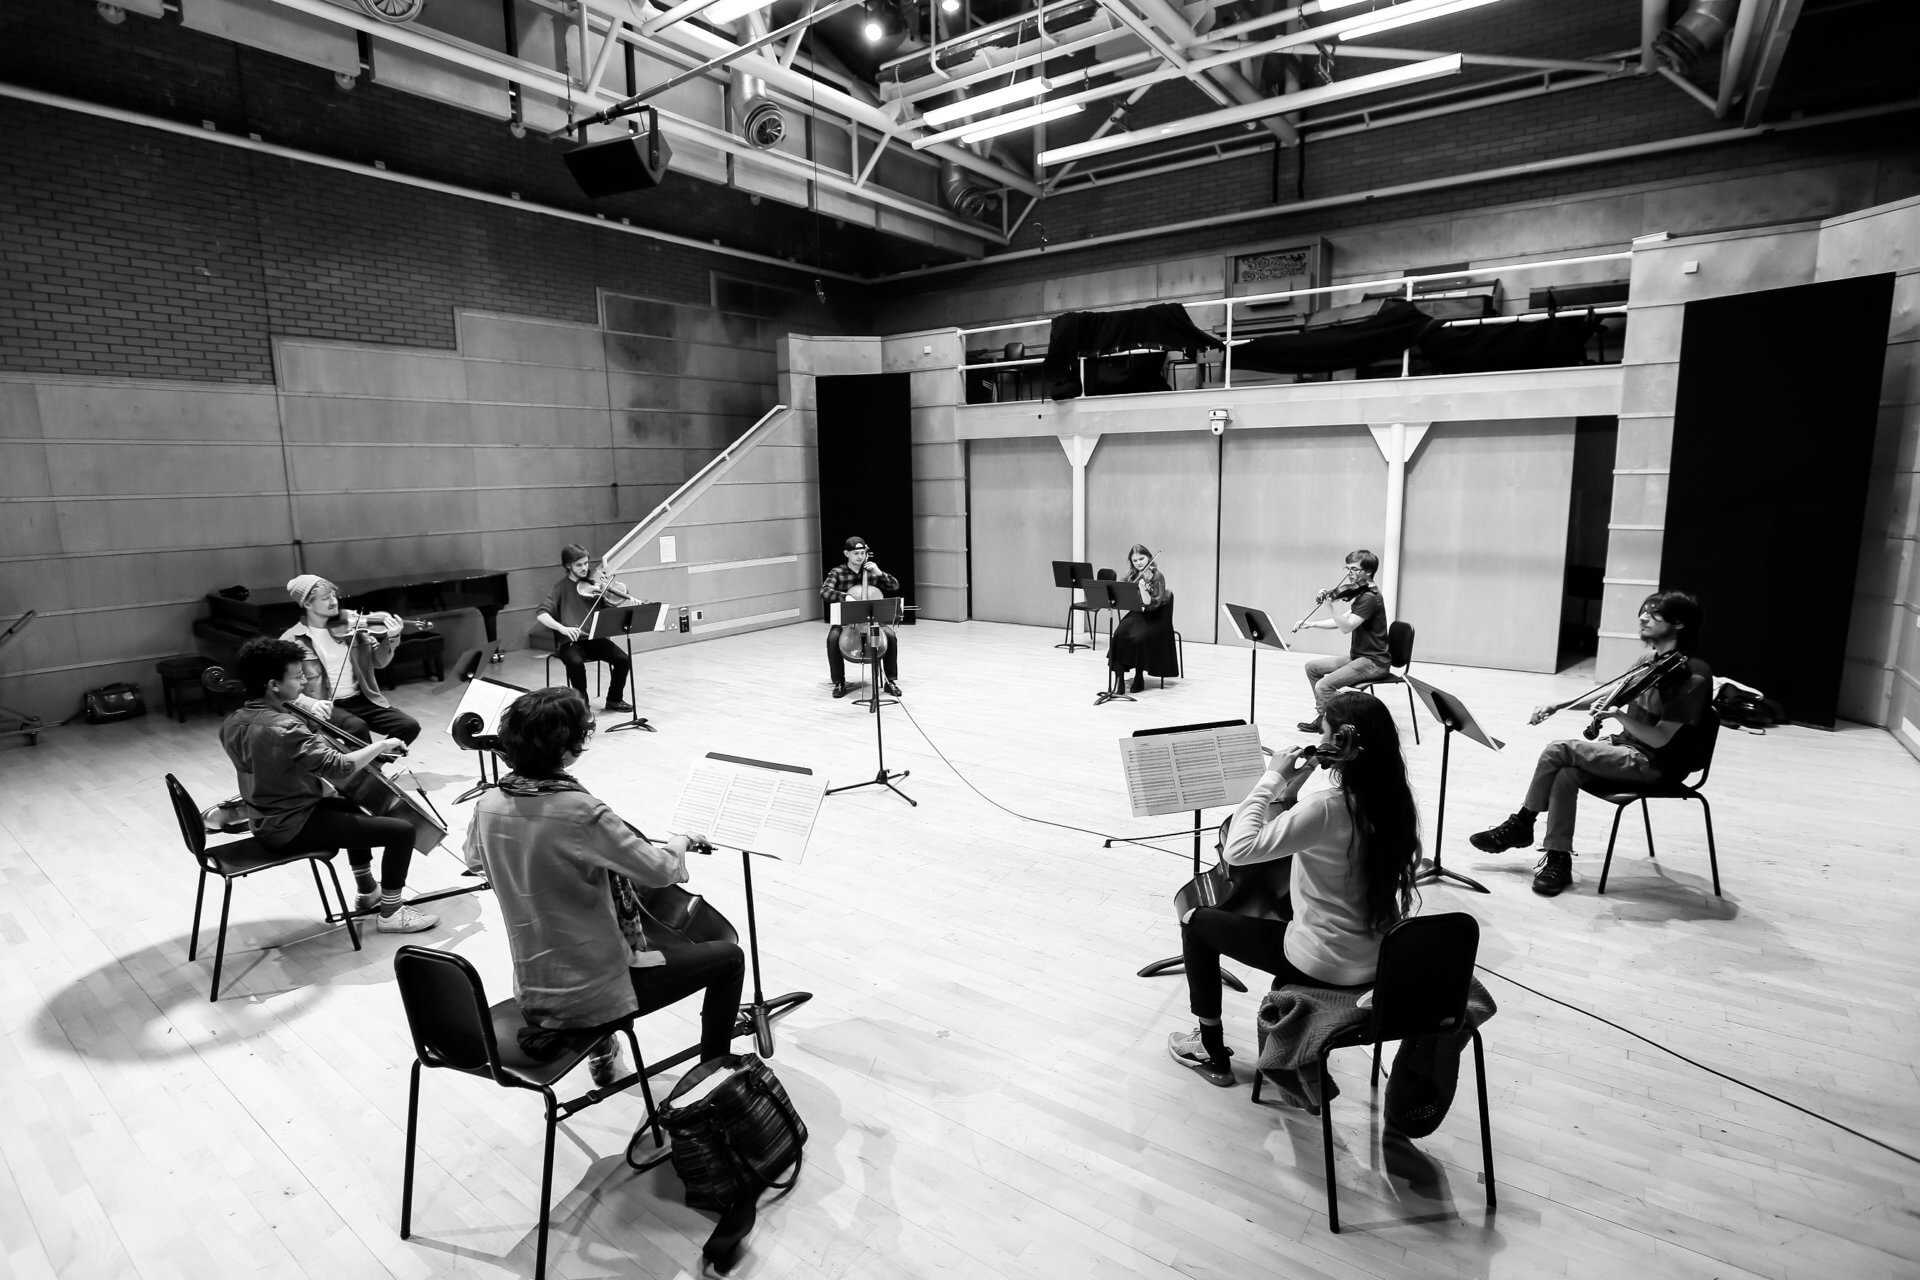 B&W image of string musicians called Studio Collective sitting in a circle in a concert hall at the Royal Conservatoire of Scotland with violinist and RCS associate artist Daniel Pioro.